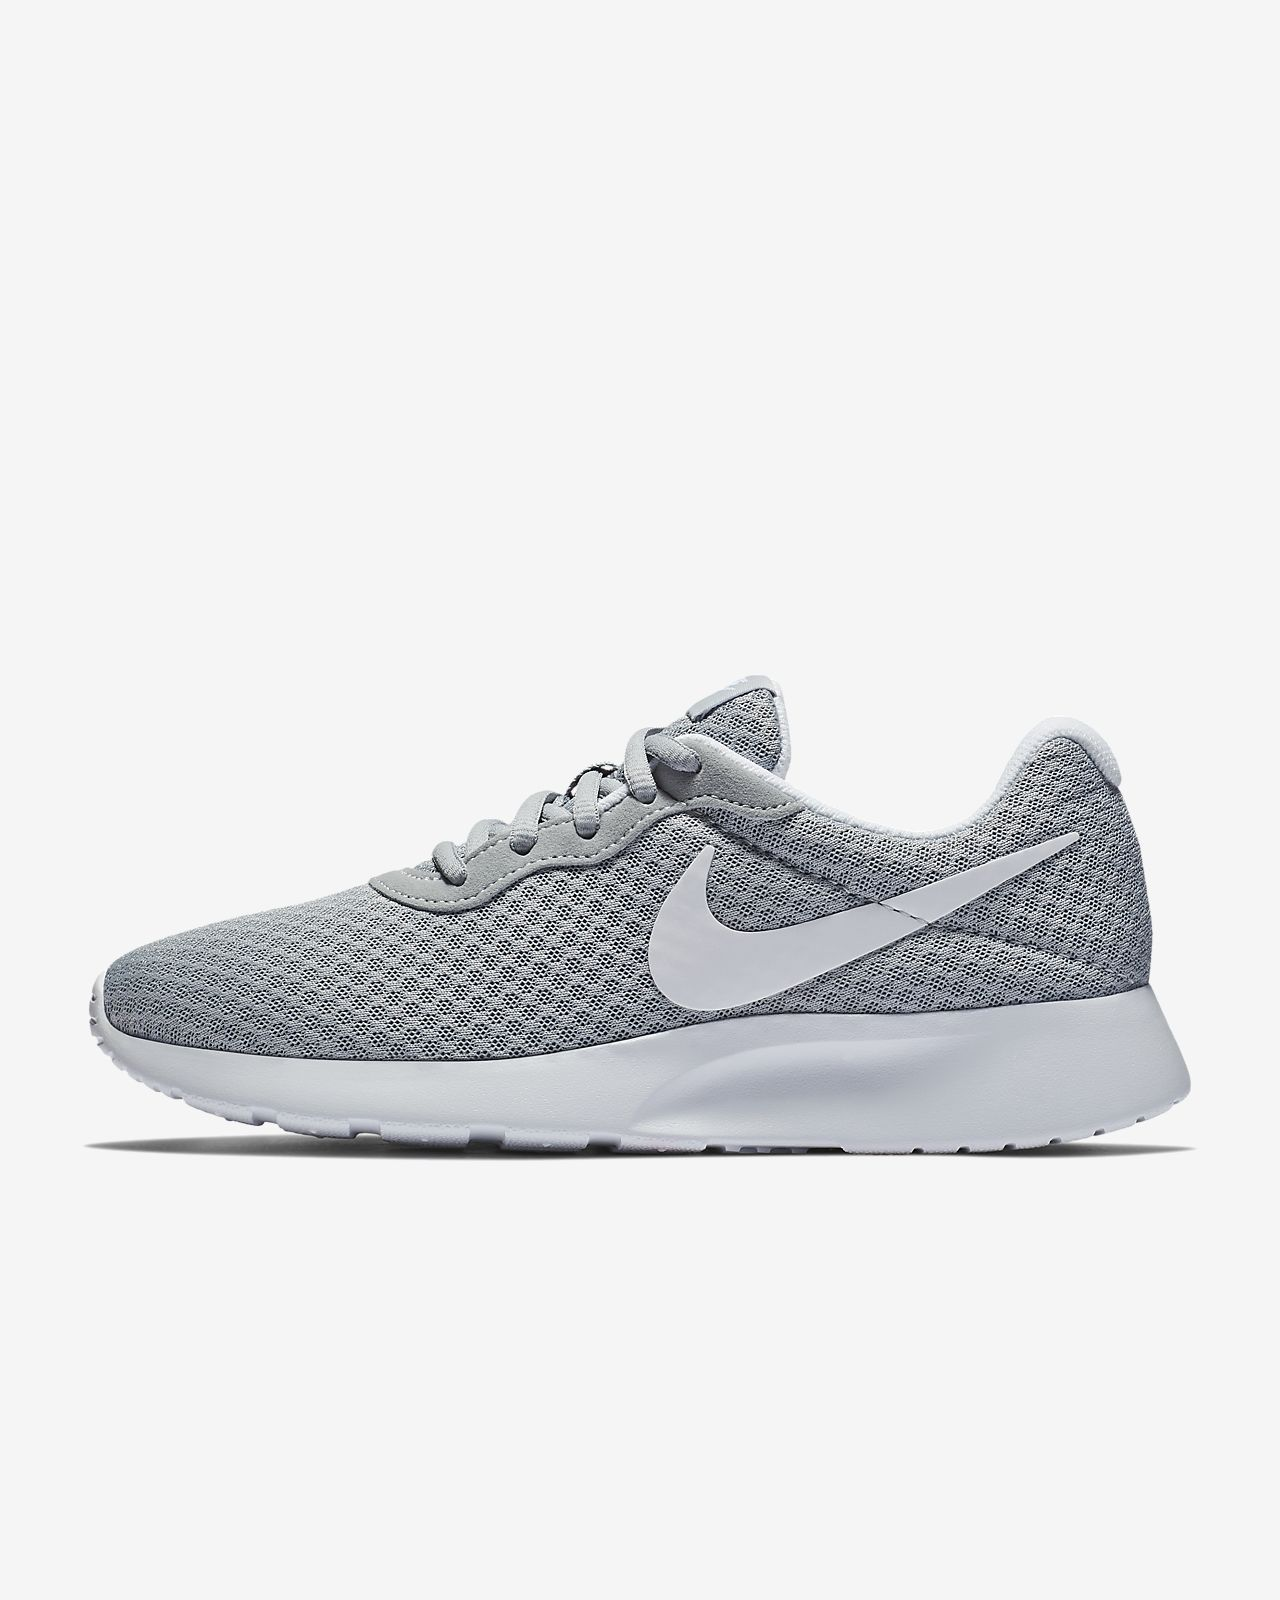 877af6992960 Low Resolution Nike Tanjun Women s Shoe Nike Tanjun Women s Shoe